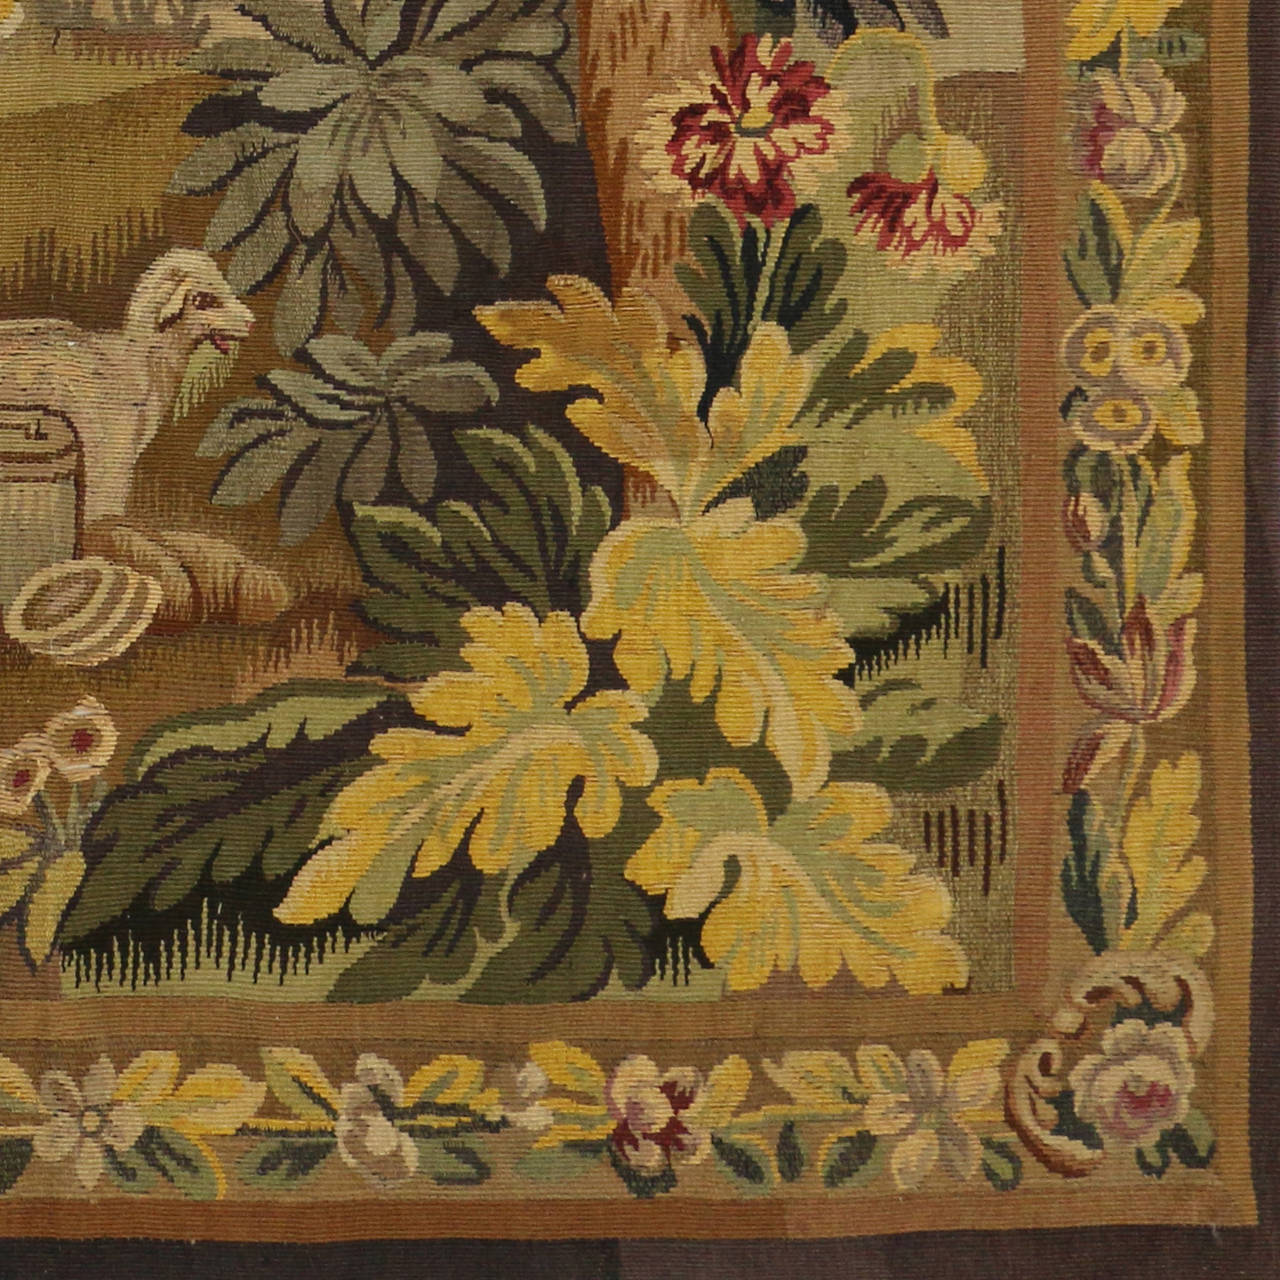 Wool Antique French Rococo Tapestry Inspired by Francois Boucher, Country Romance For Sale